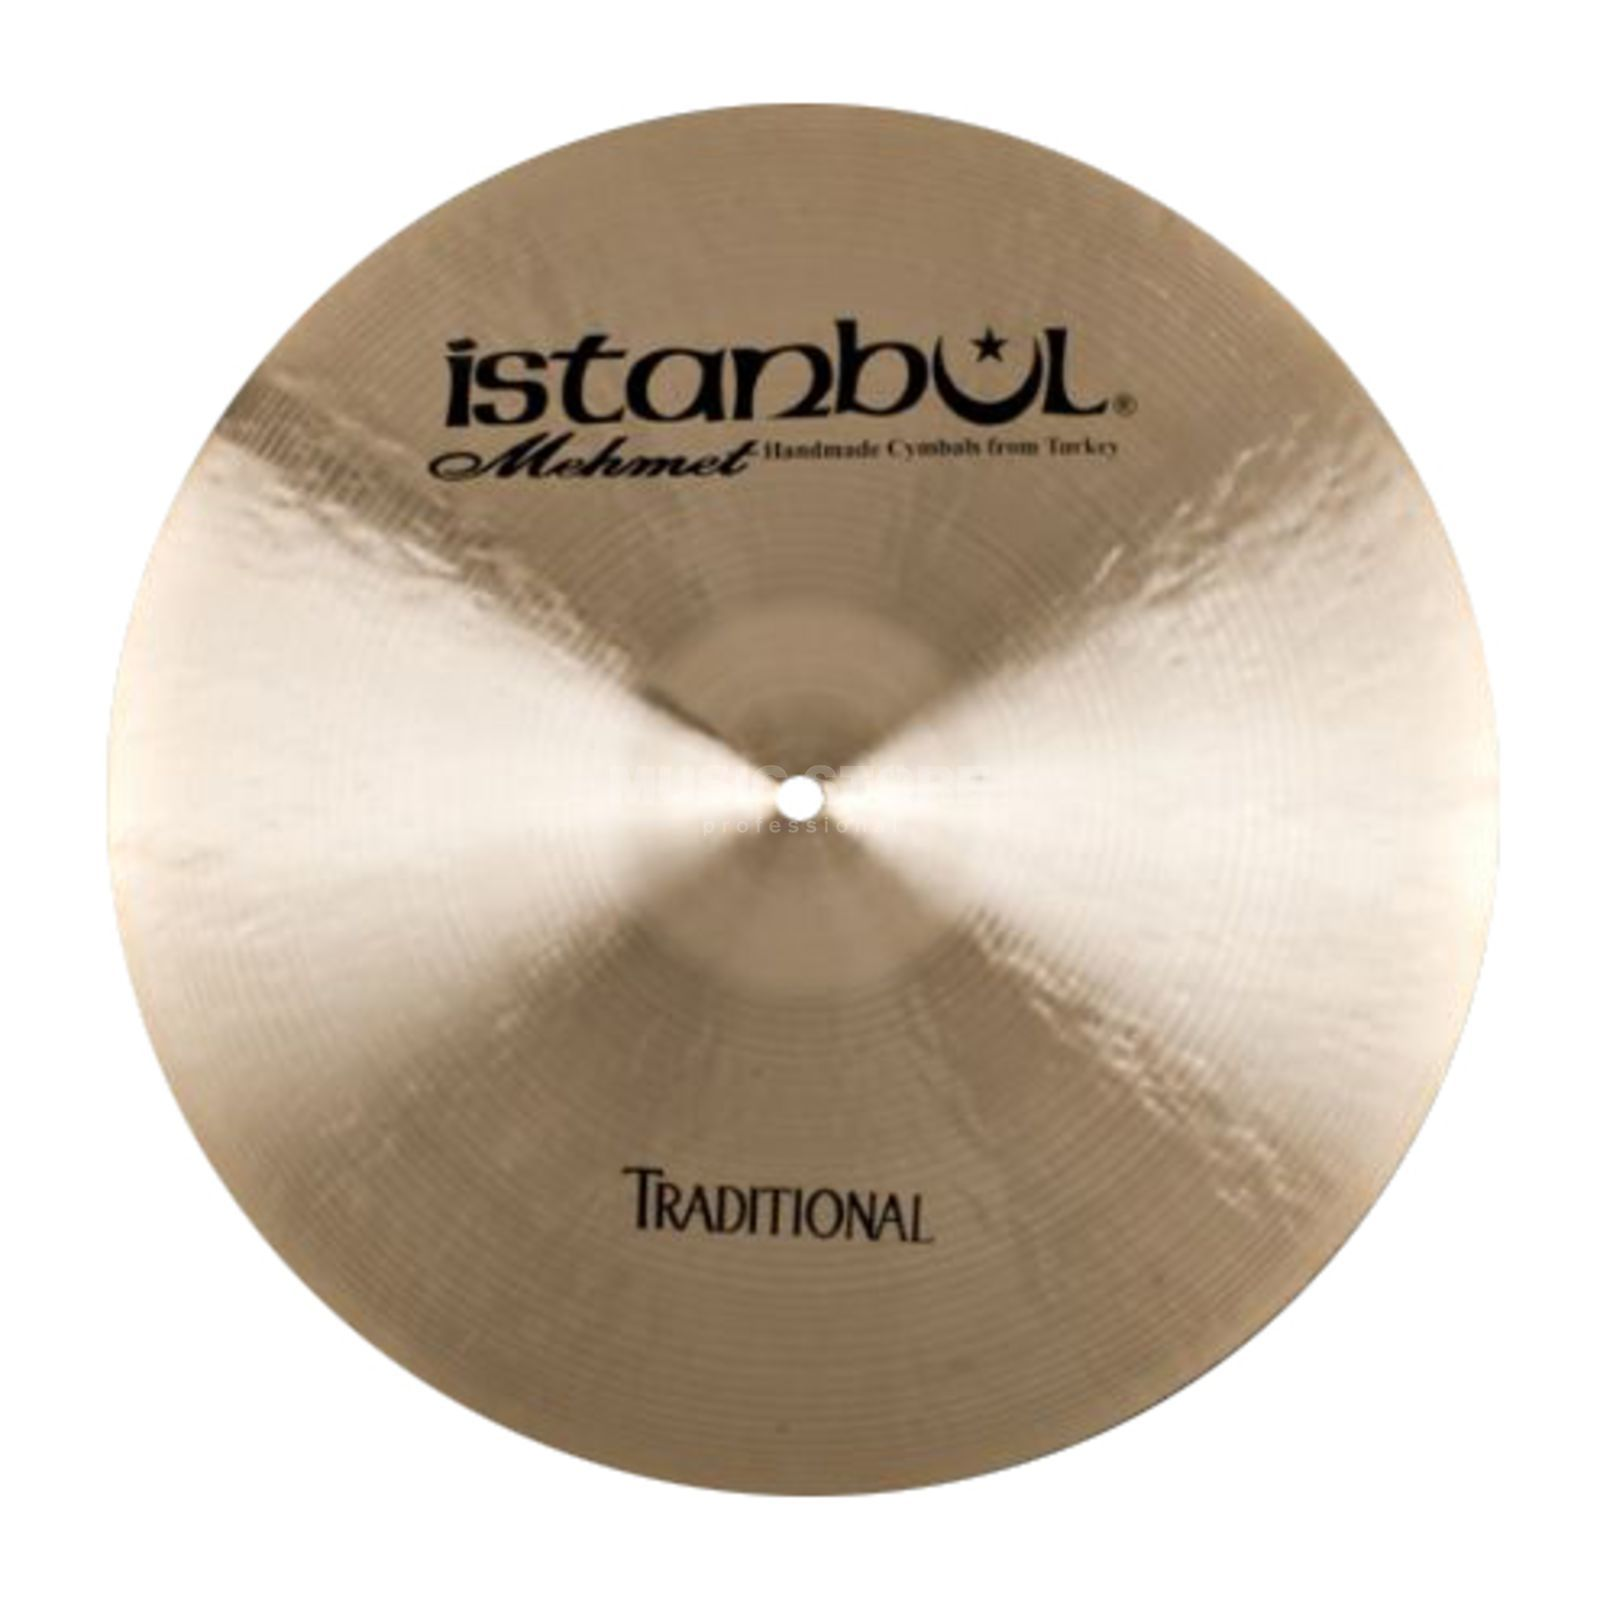 "Istanbul Traditional Dark Crash 15"", CD16 Produktbillede"